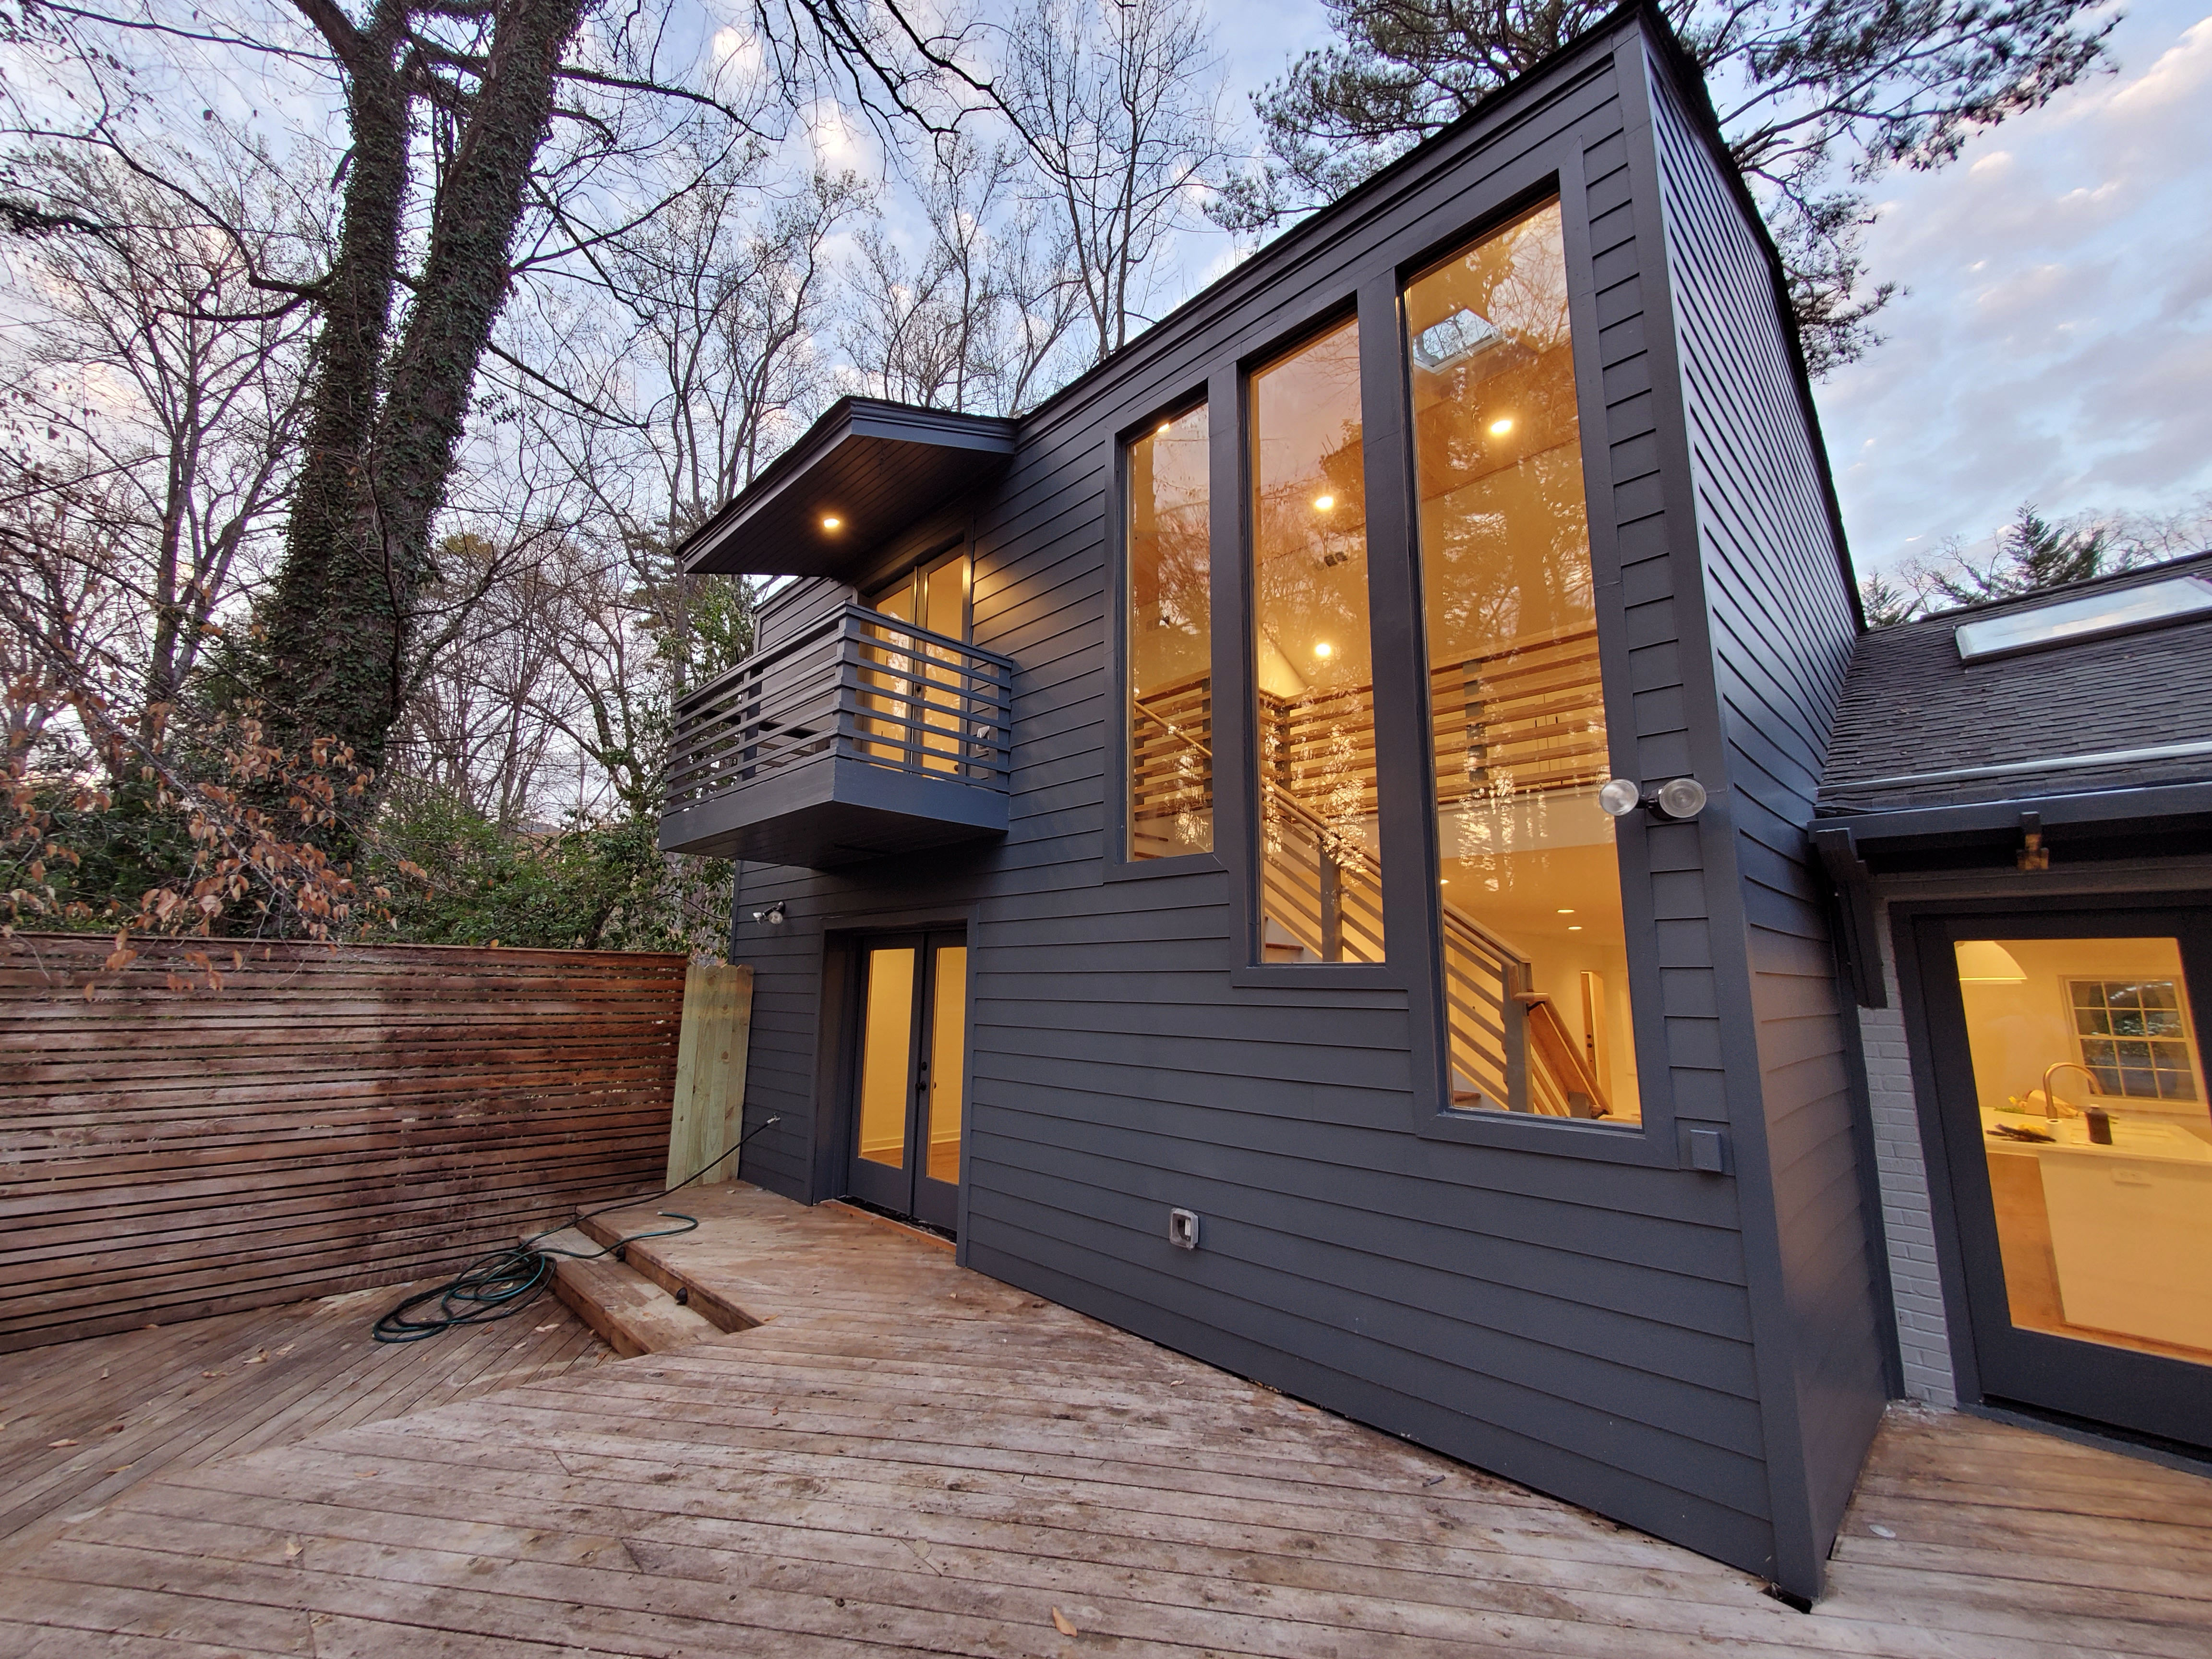 Virginia Highlands, Atlanta, Ga., Design Build, Renovation, Good Haus, Goodhaus, Architectural, Inte